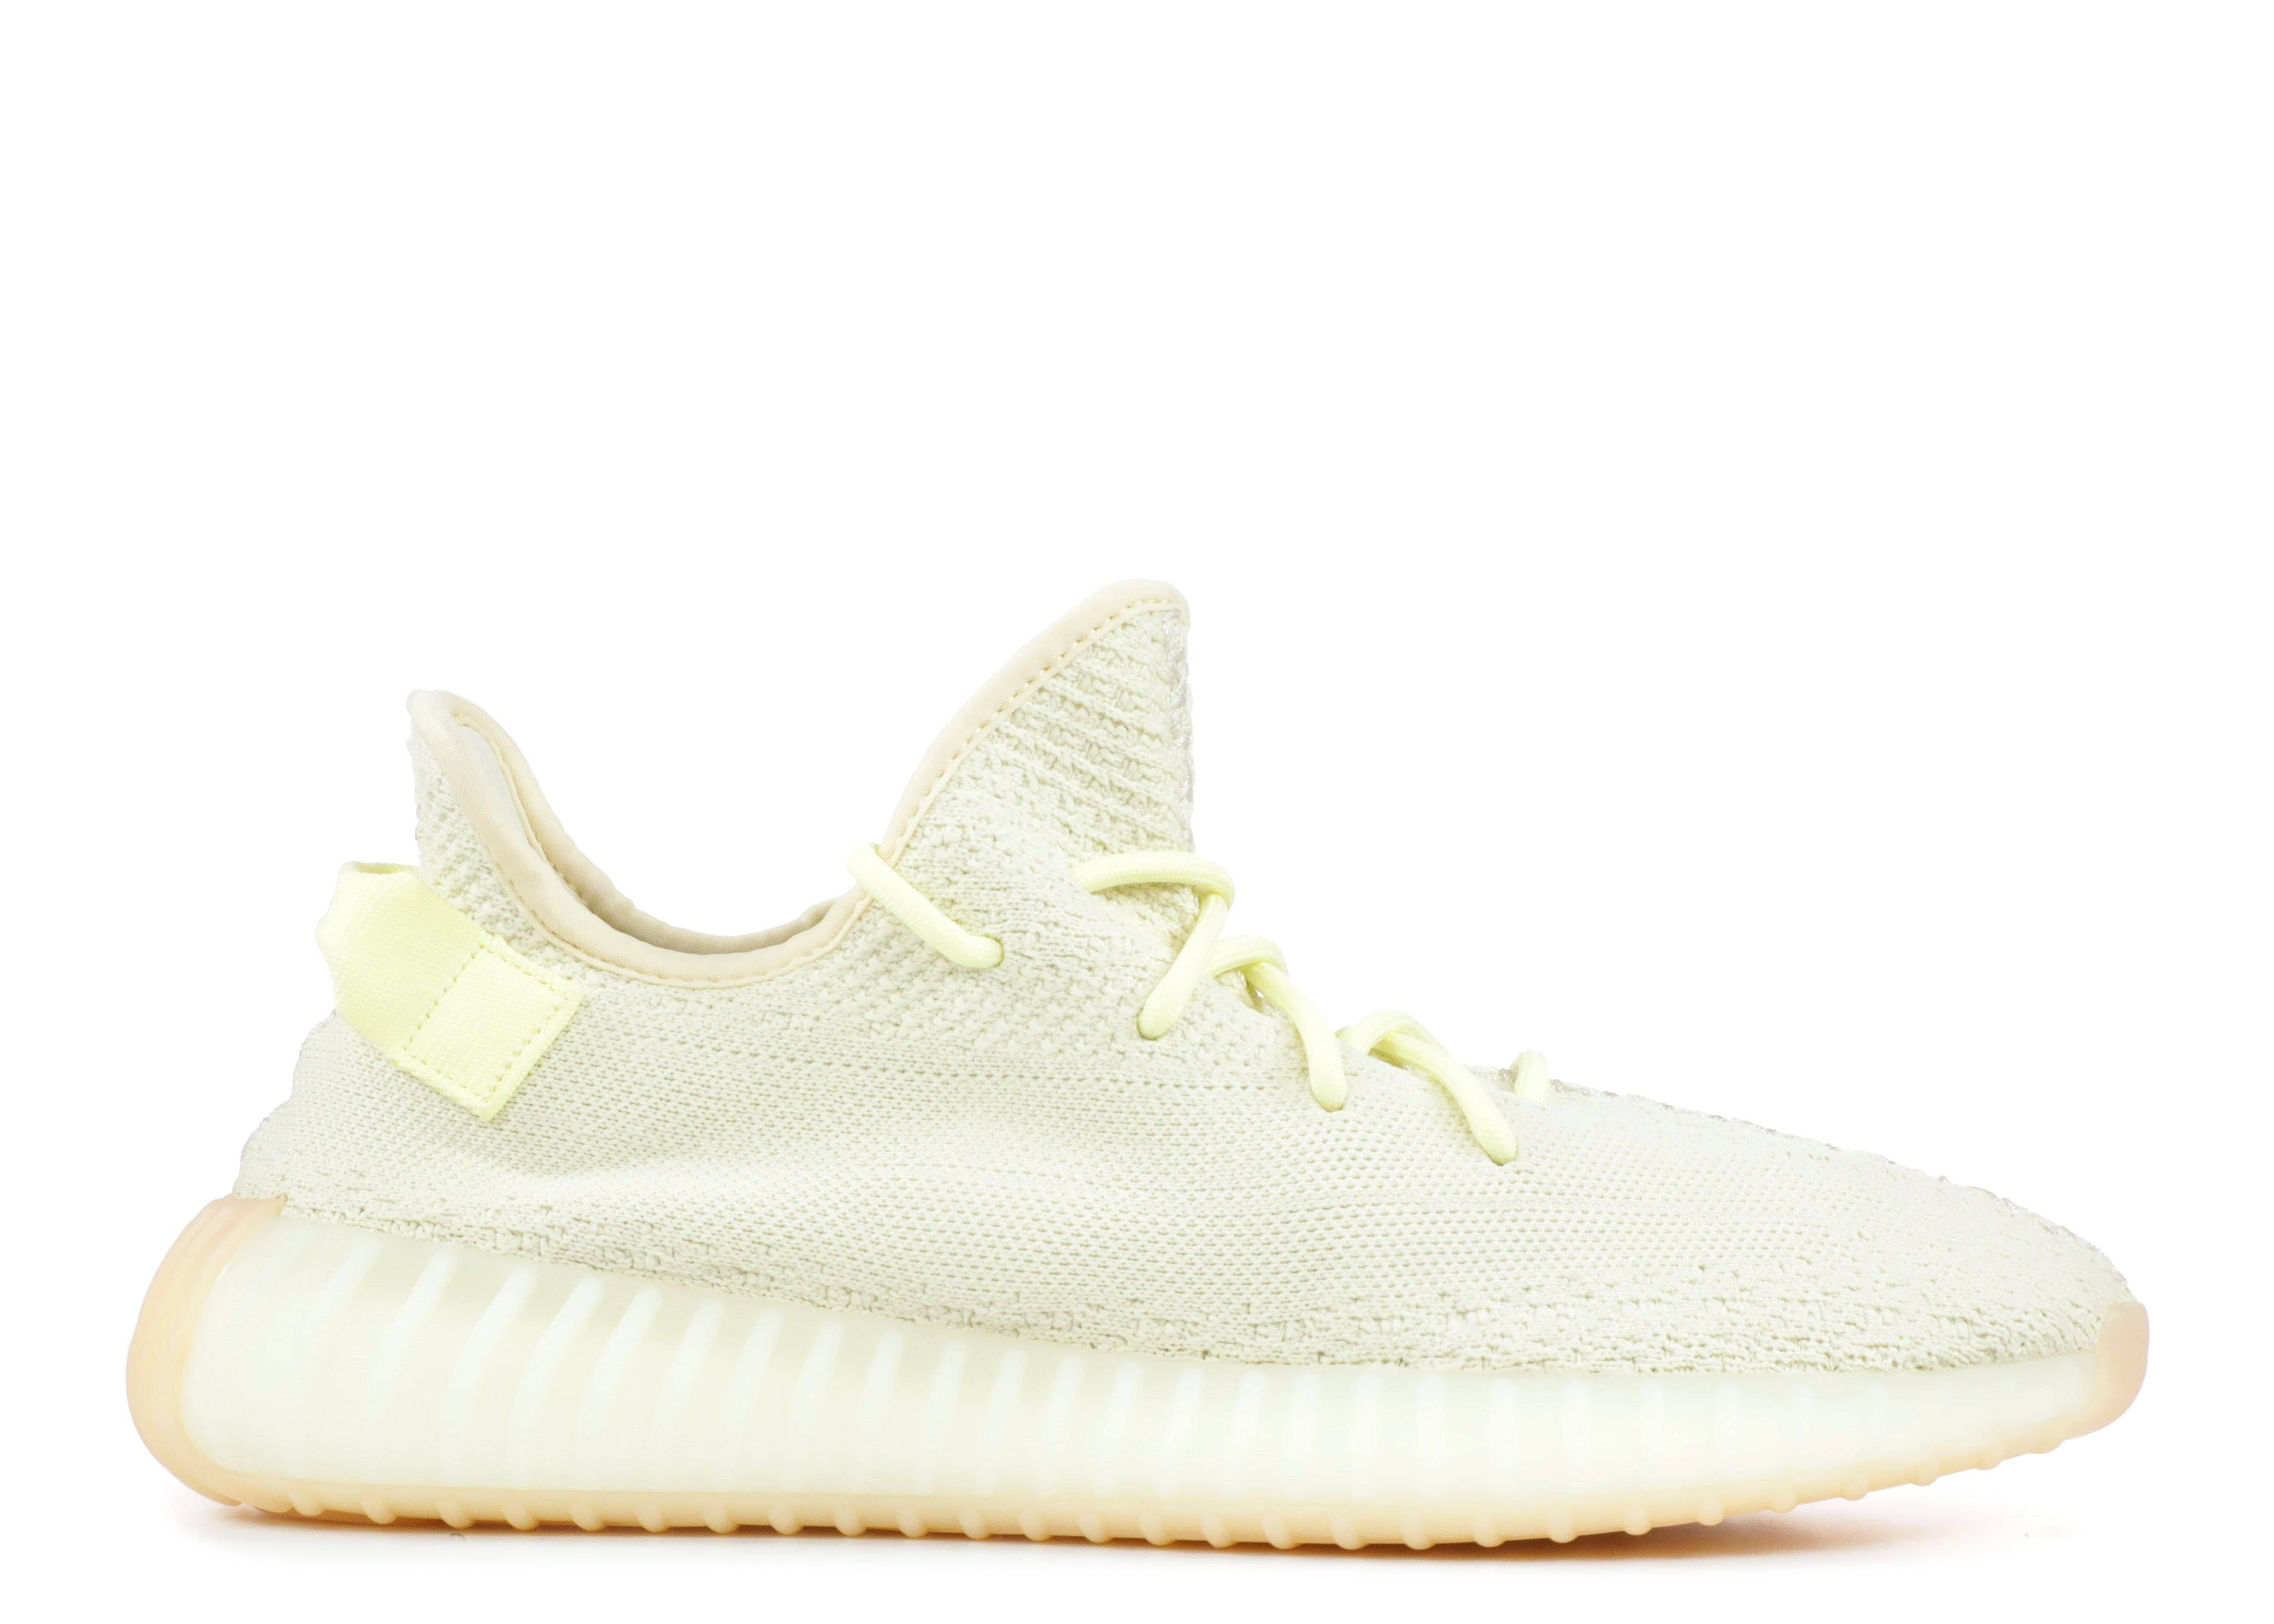 3c32a367fae Yeezy Boost 350 V2